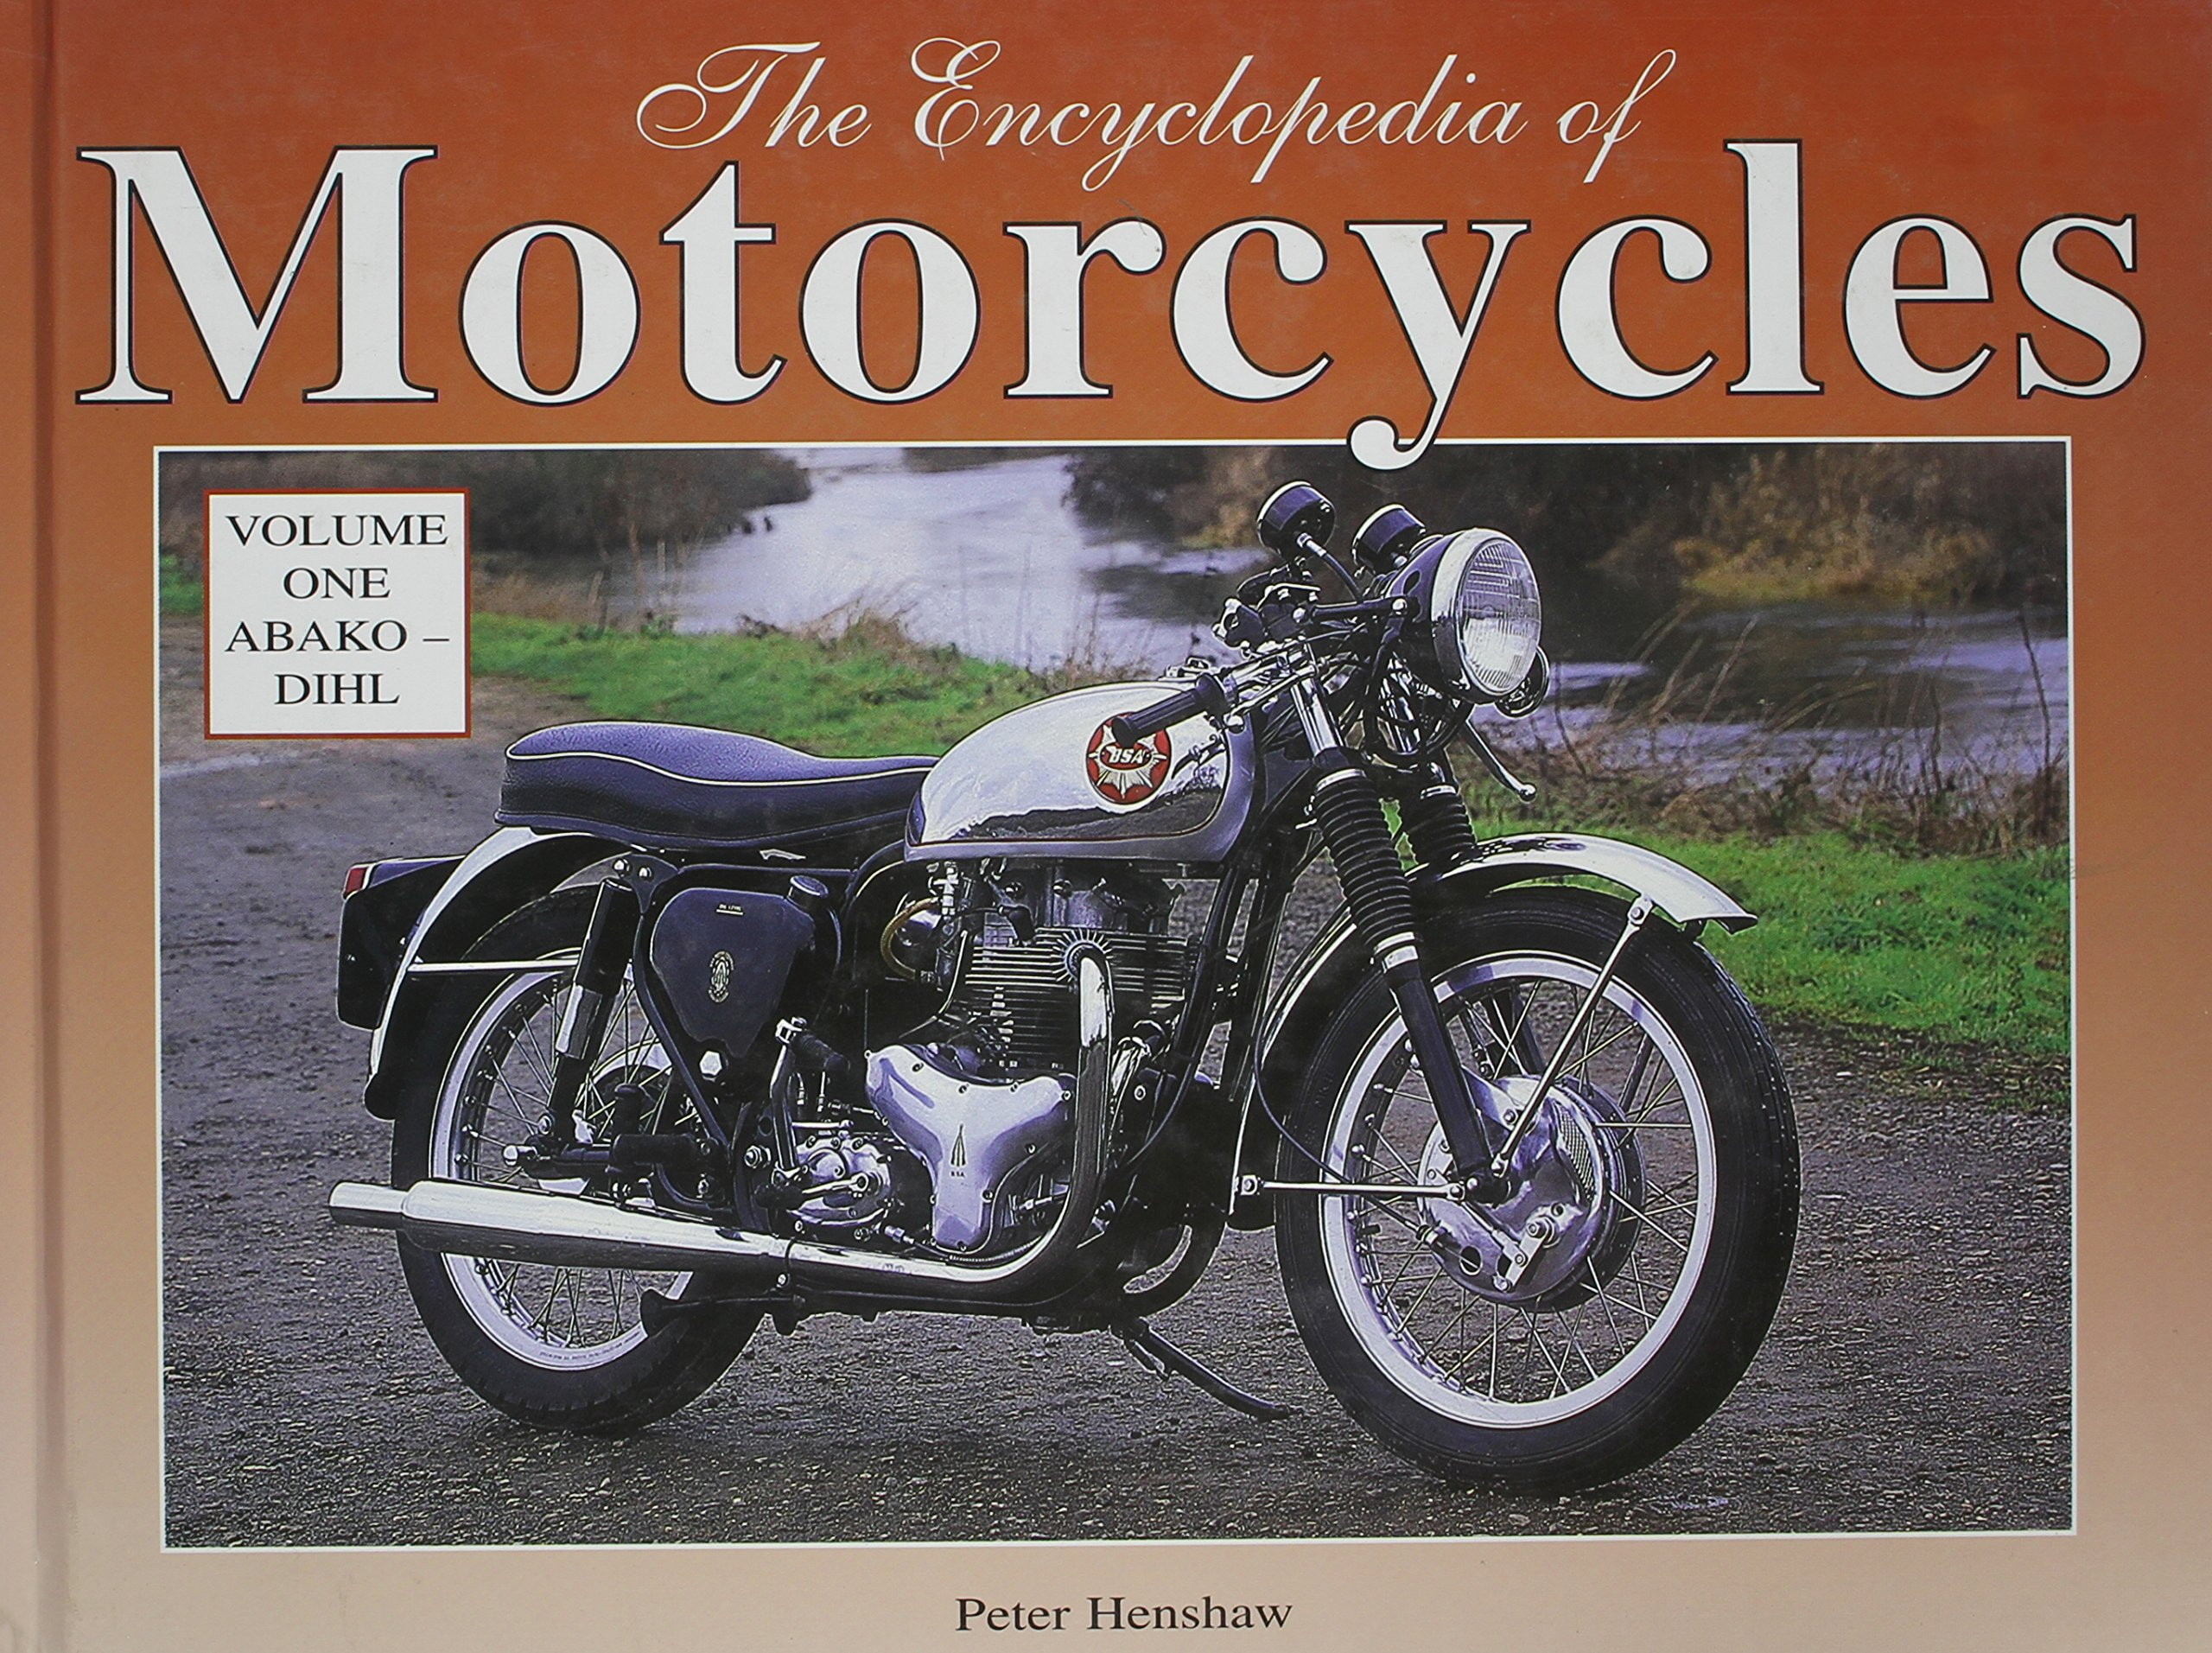 The Encyclopedia of Motorcycles, Vol. 1: Abako - Dihl